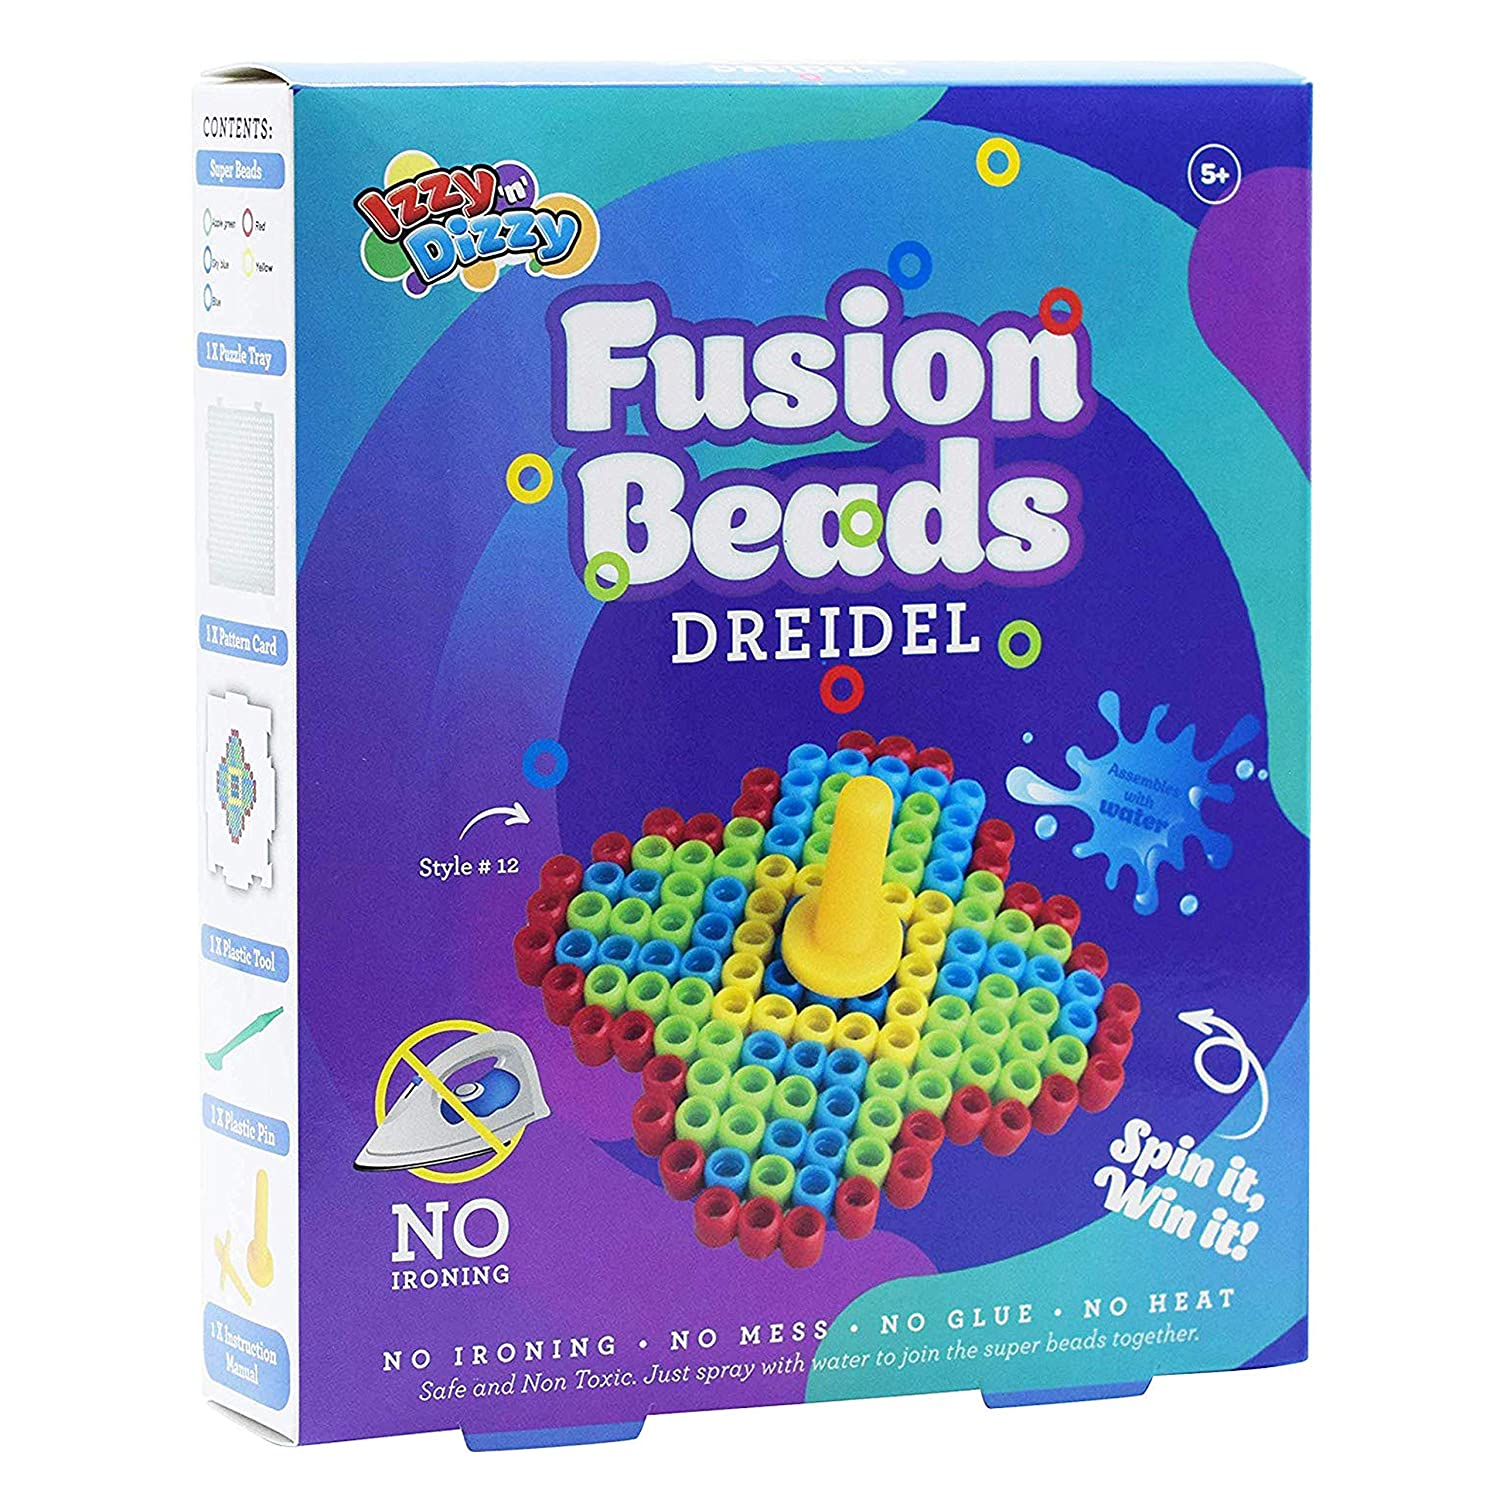 Create Your Own Dreidel Izzy /'n/' Dizzy Hanukkah Fusion Beads Dreidel Hanukah Arts and Crafts Gifts and Games